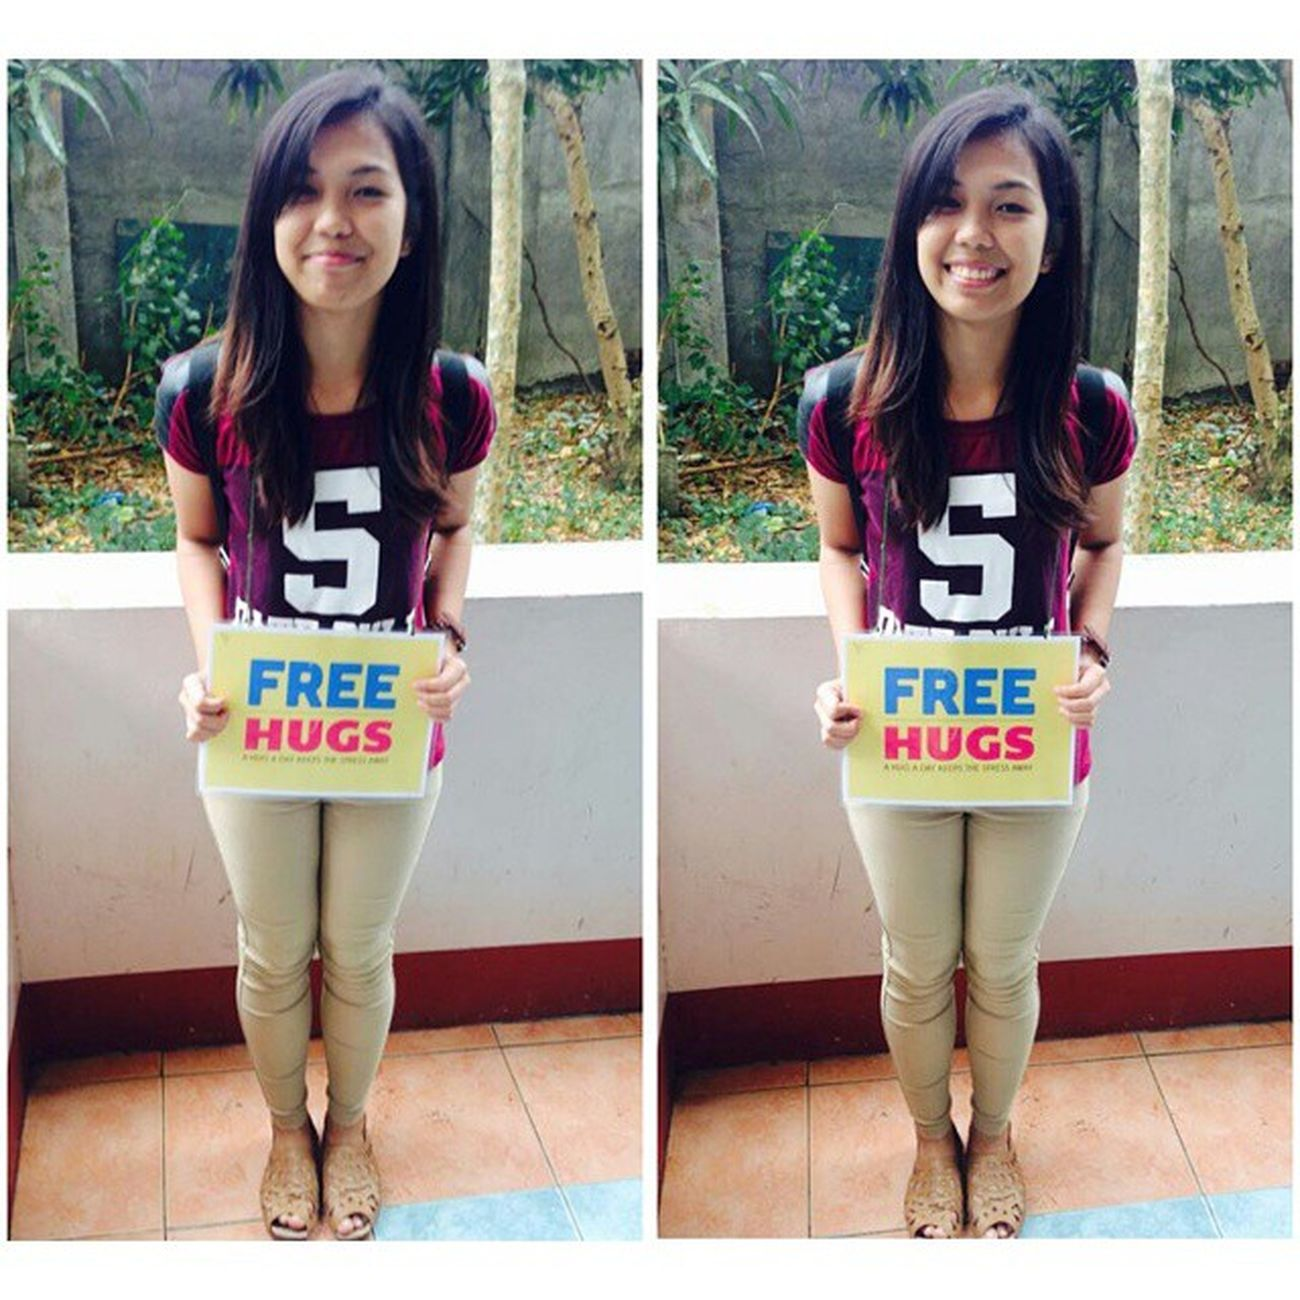 Free Hug! Adnu BusinessWeek and PsychologyWeek